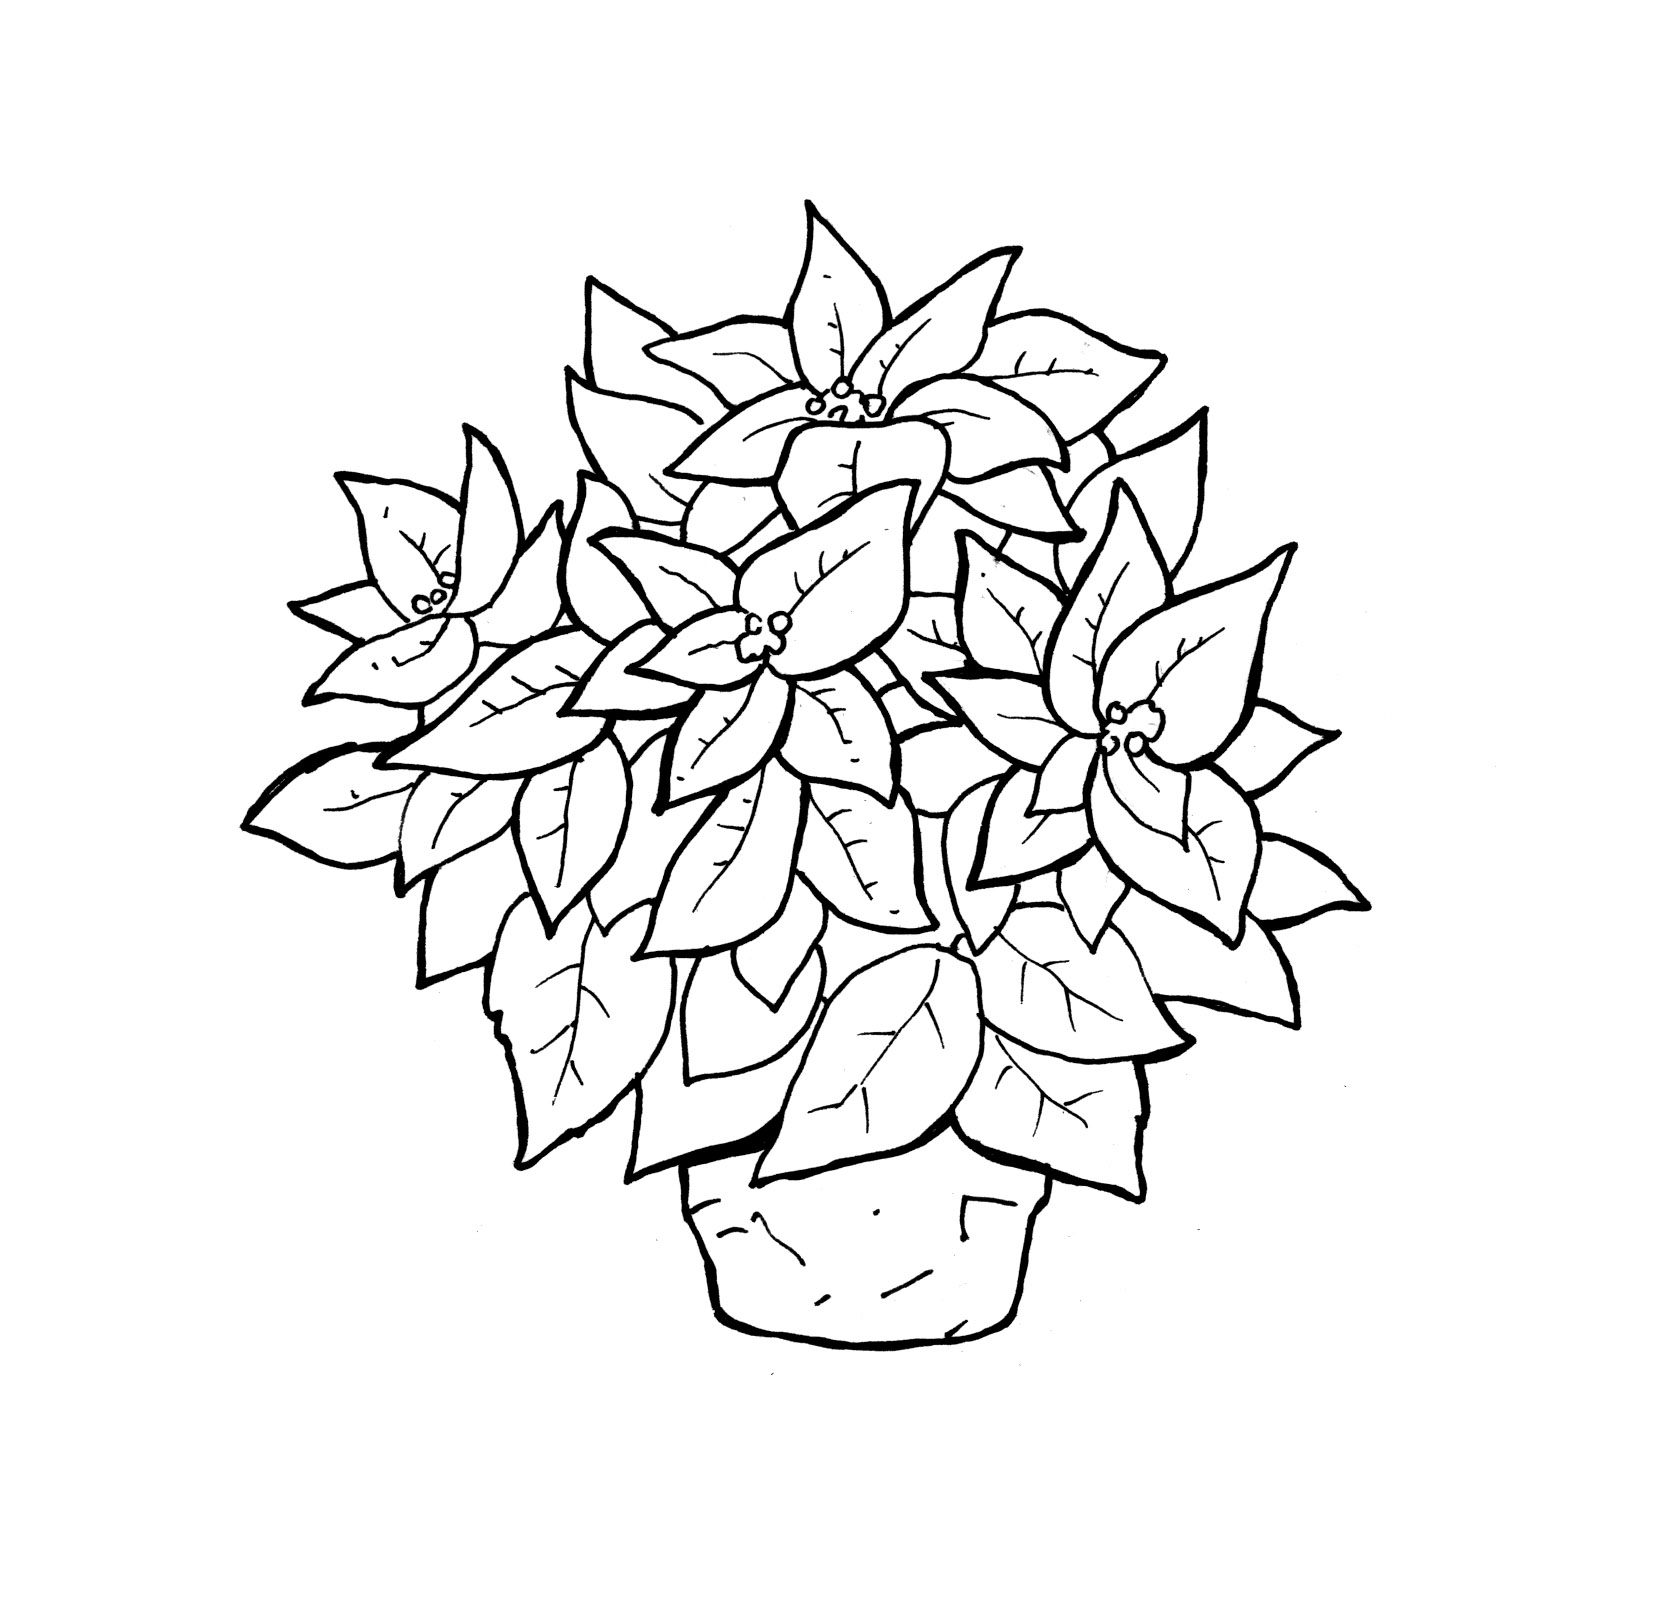 Coloring Pages Of Flowers In A Vase Image collections - Vases ...